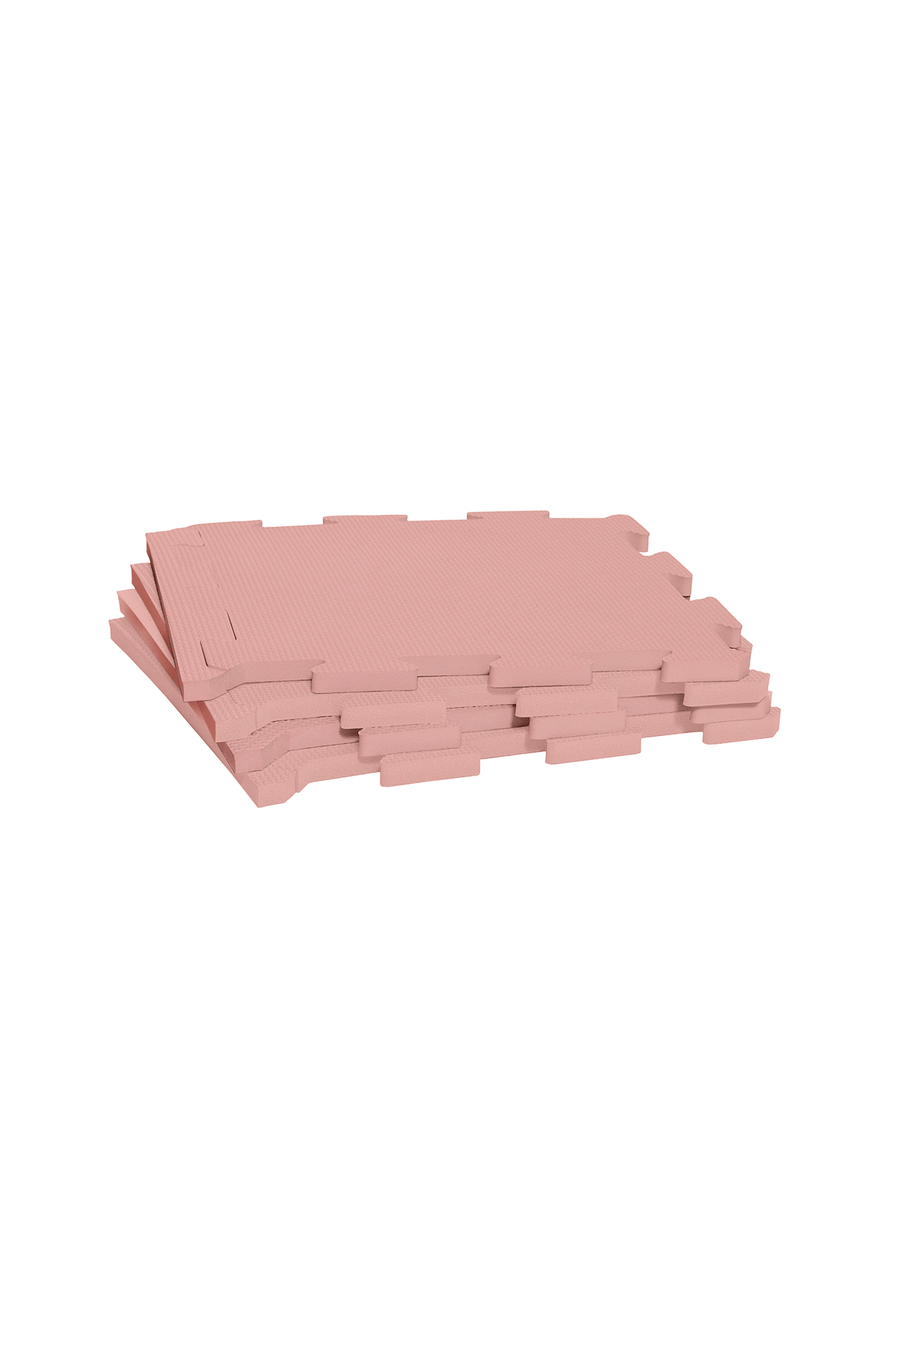 The Modern Nursery Puzzle Playmat Extension - Rose (4pcs)